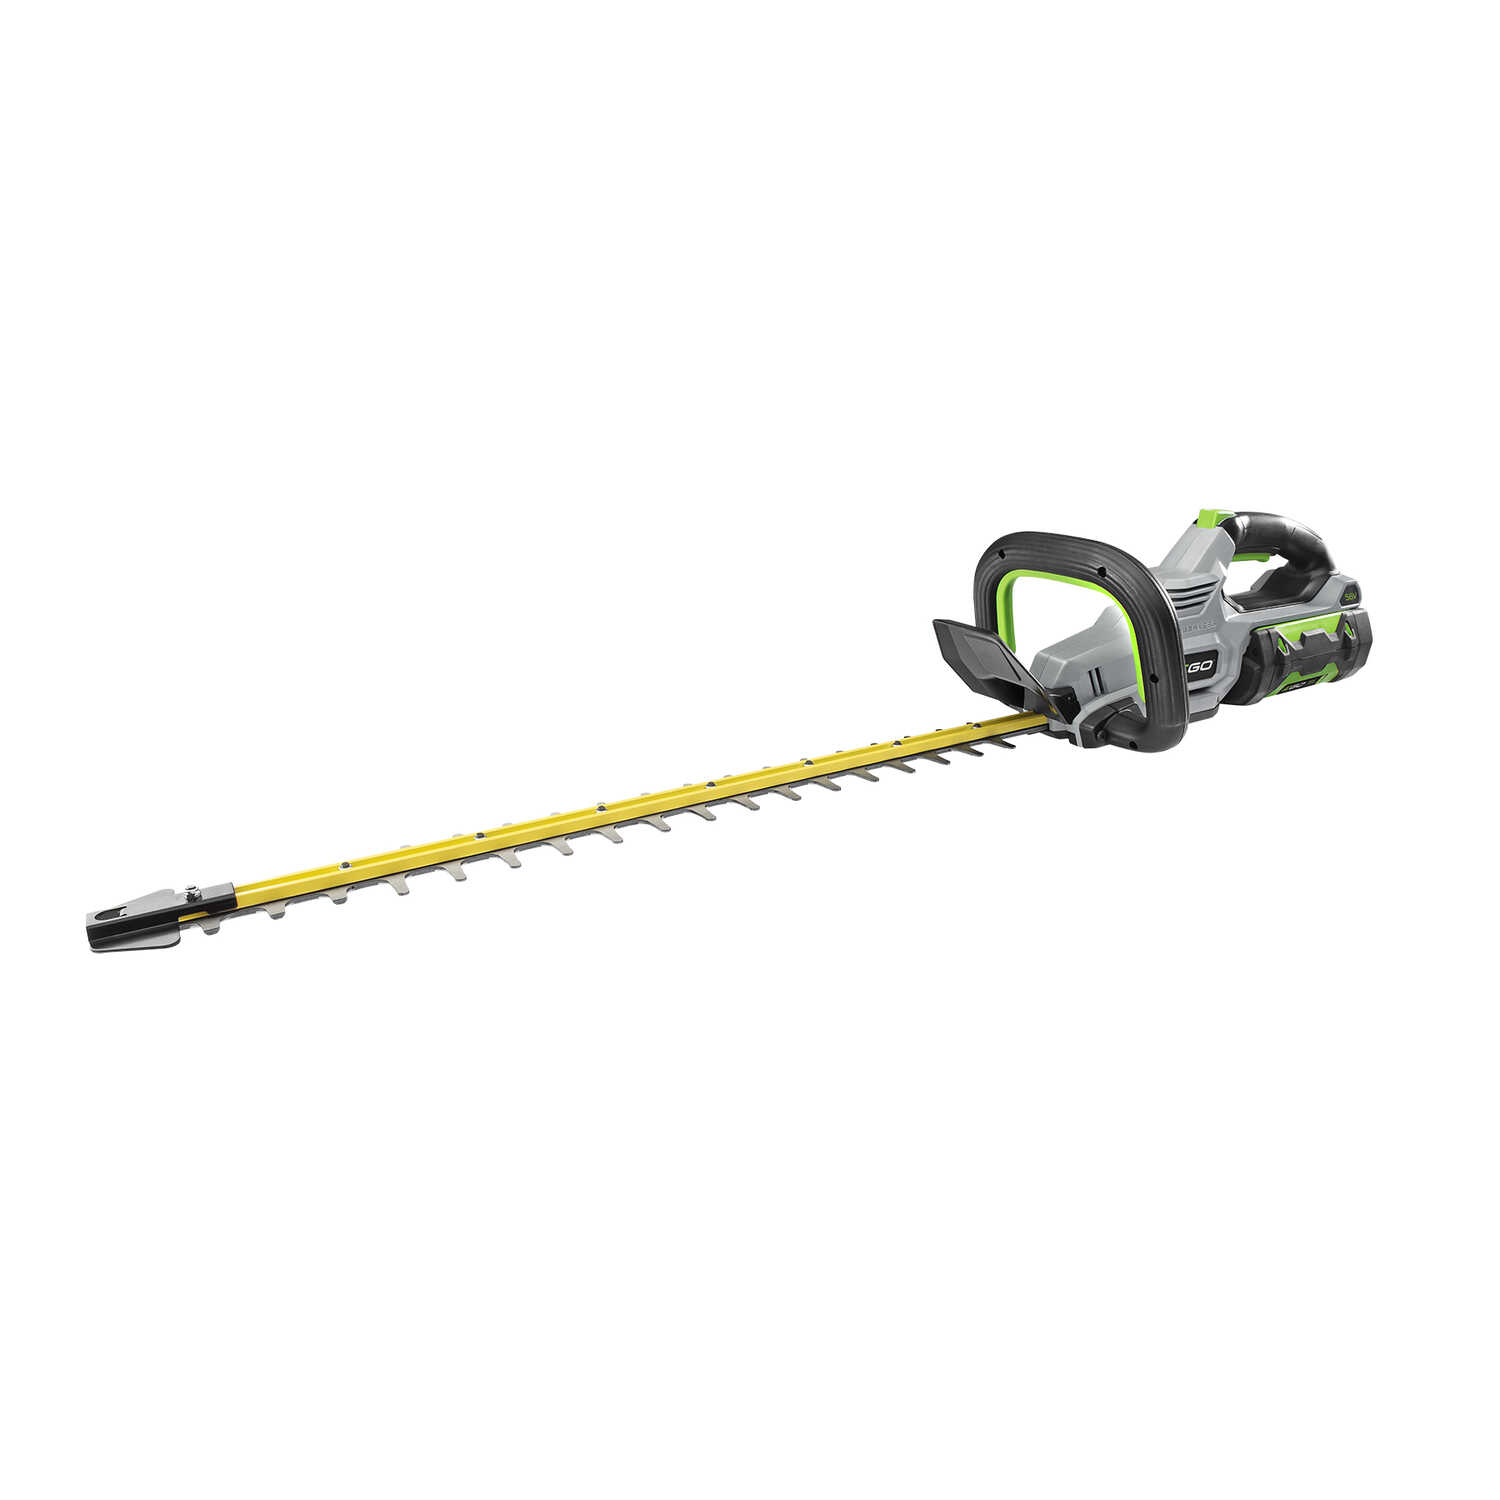 EGO  Power Plus  24 in. L 56 volt Battery  Hedge Trimmer